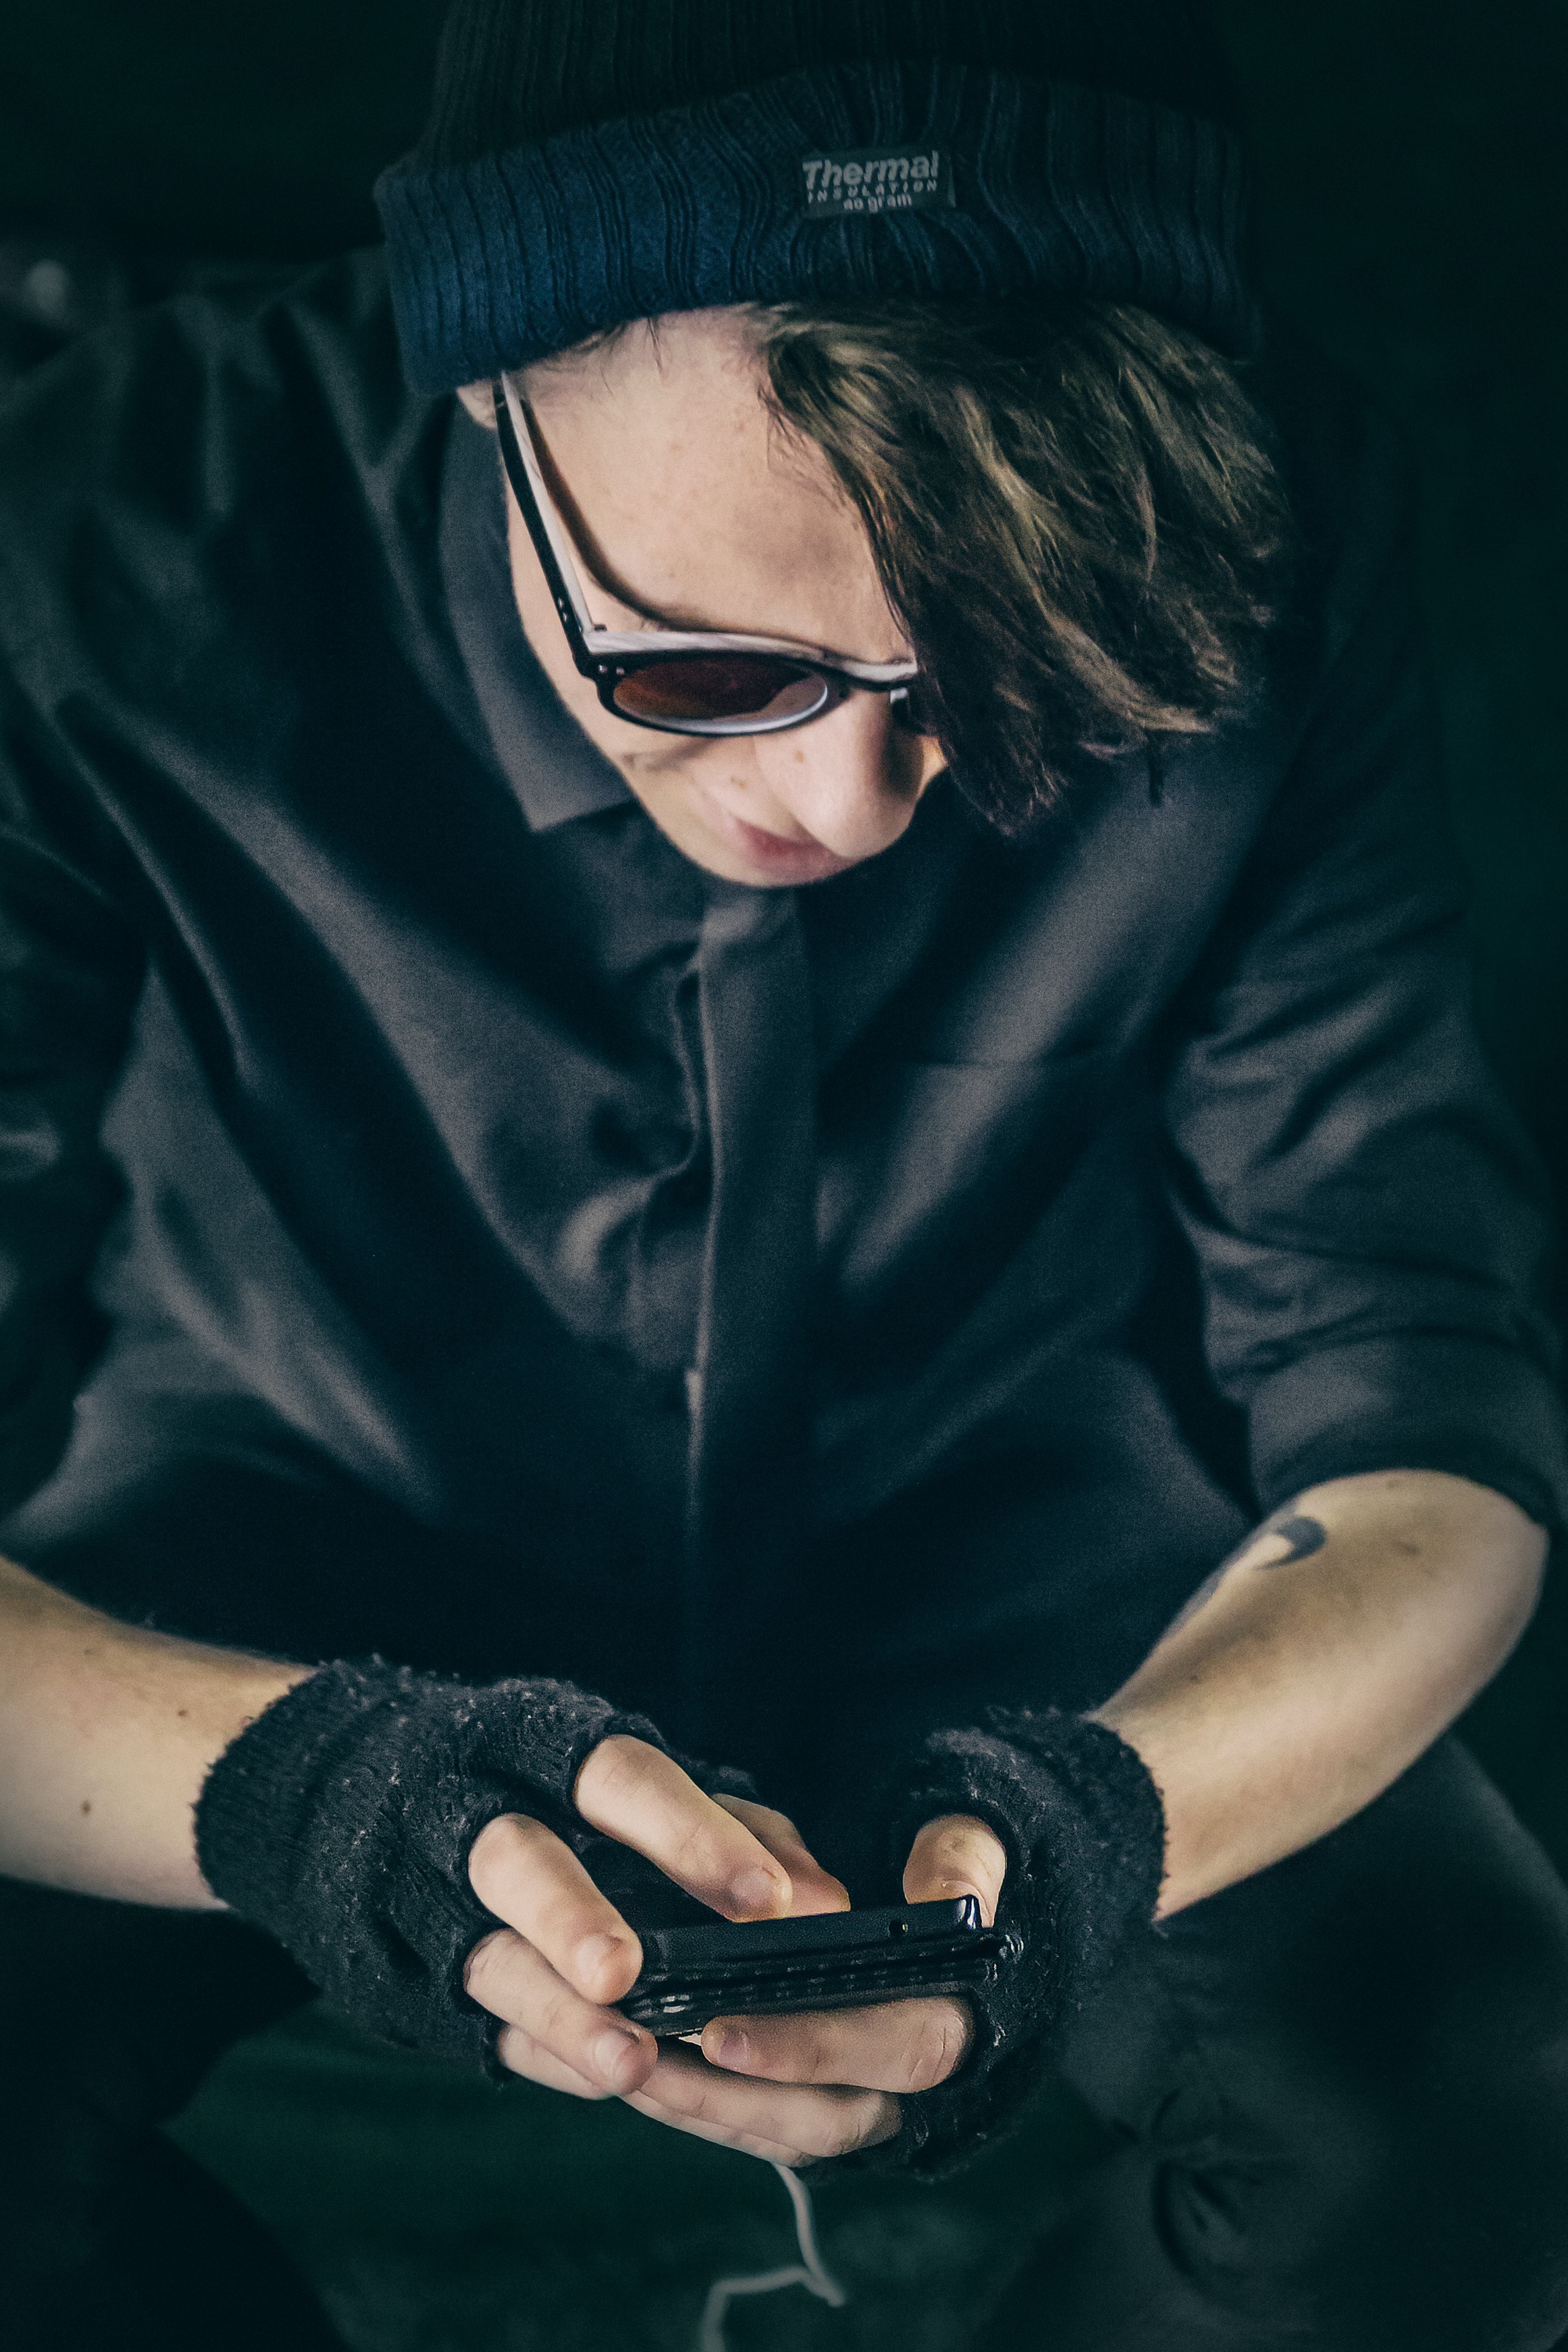 A person in black clothing and fingerless gloves looks down, using an iPhone